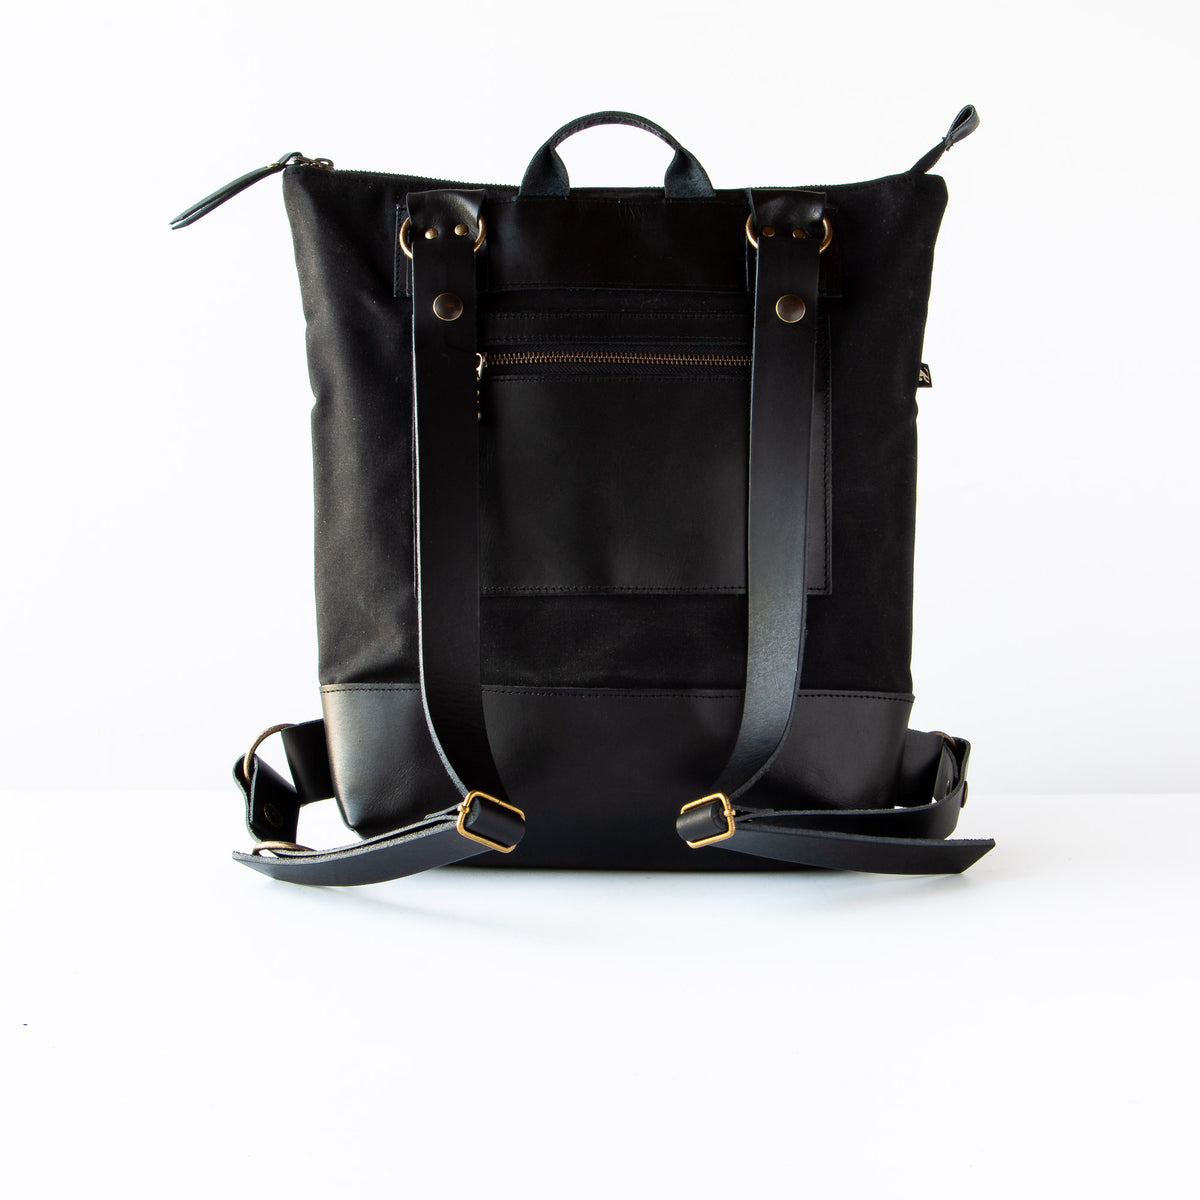 Back View - Handcrafted 13 Inch Laptop Backpack in Leather &  Charcoal Losange Fabric - Sold by Chic & Basta